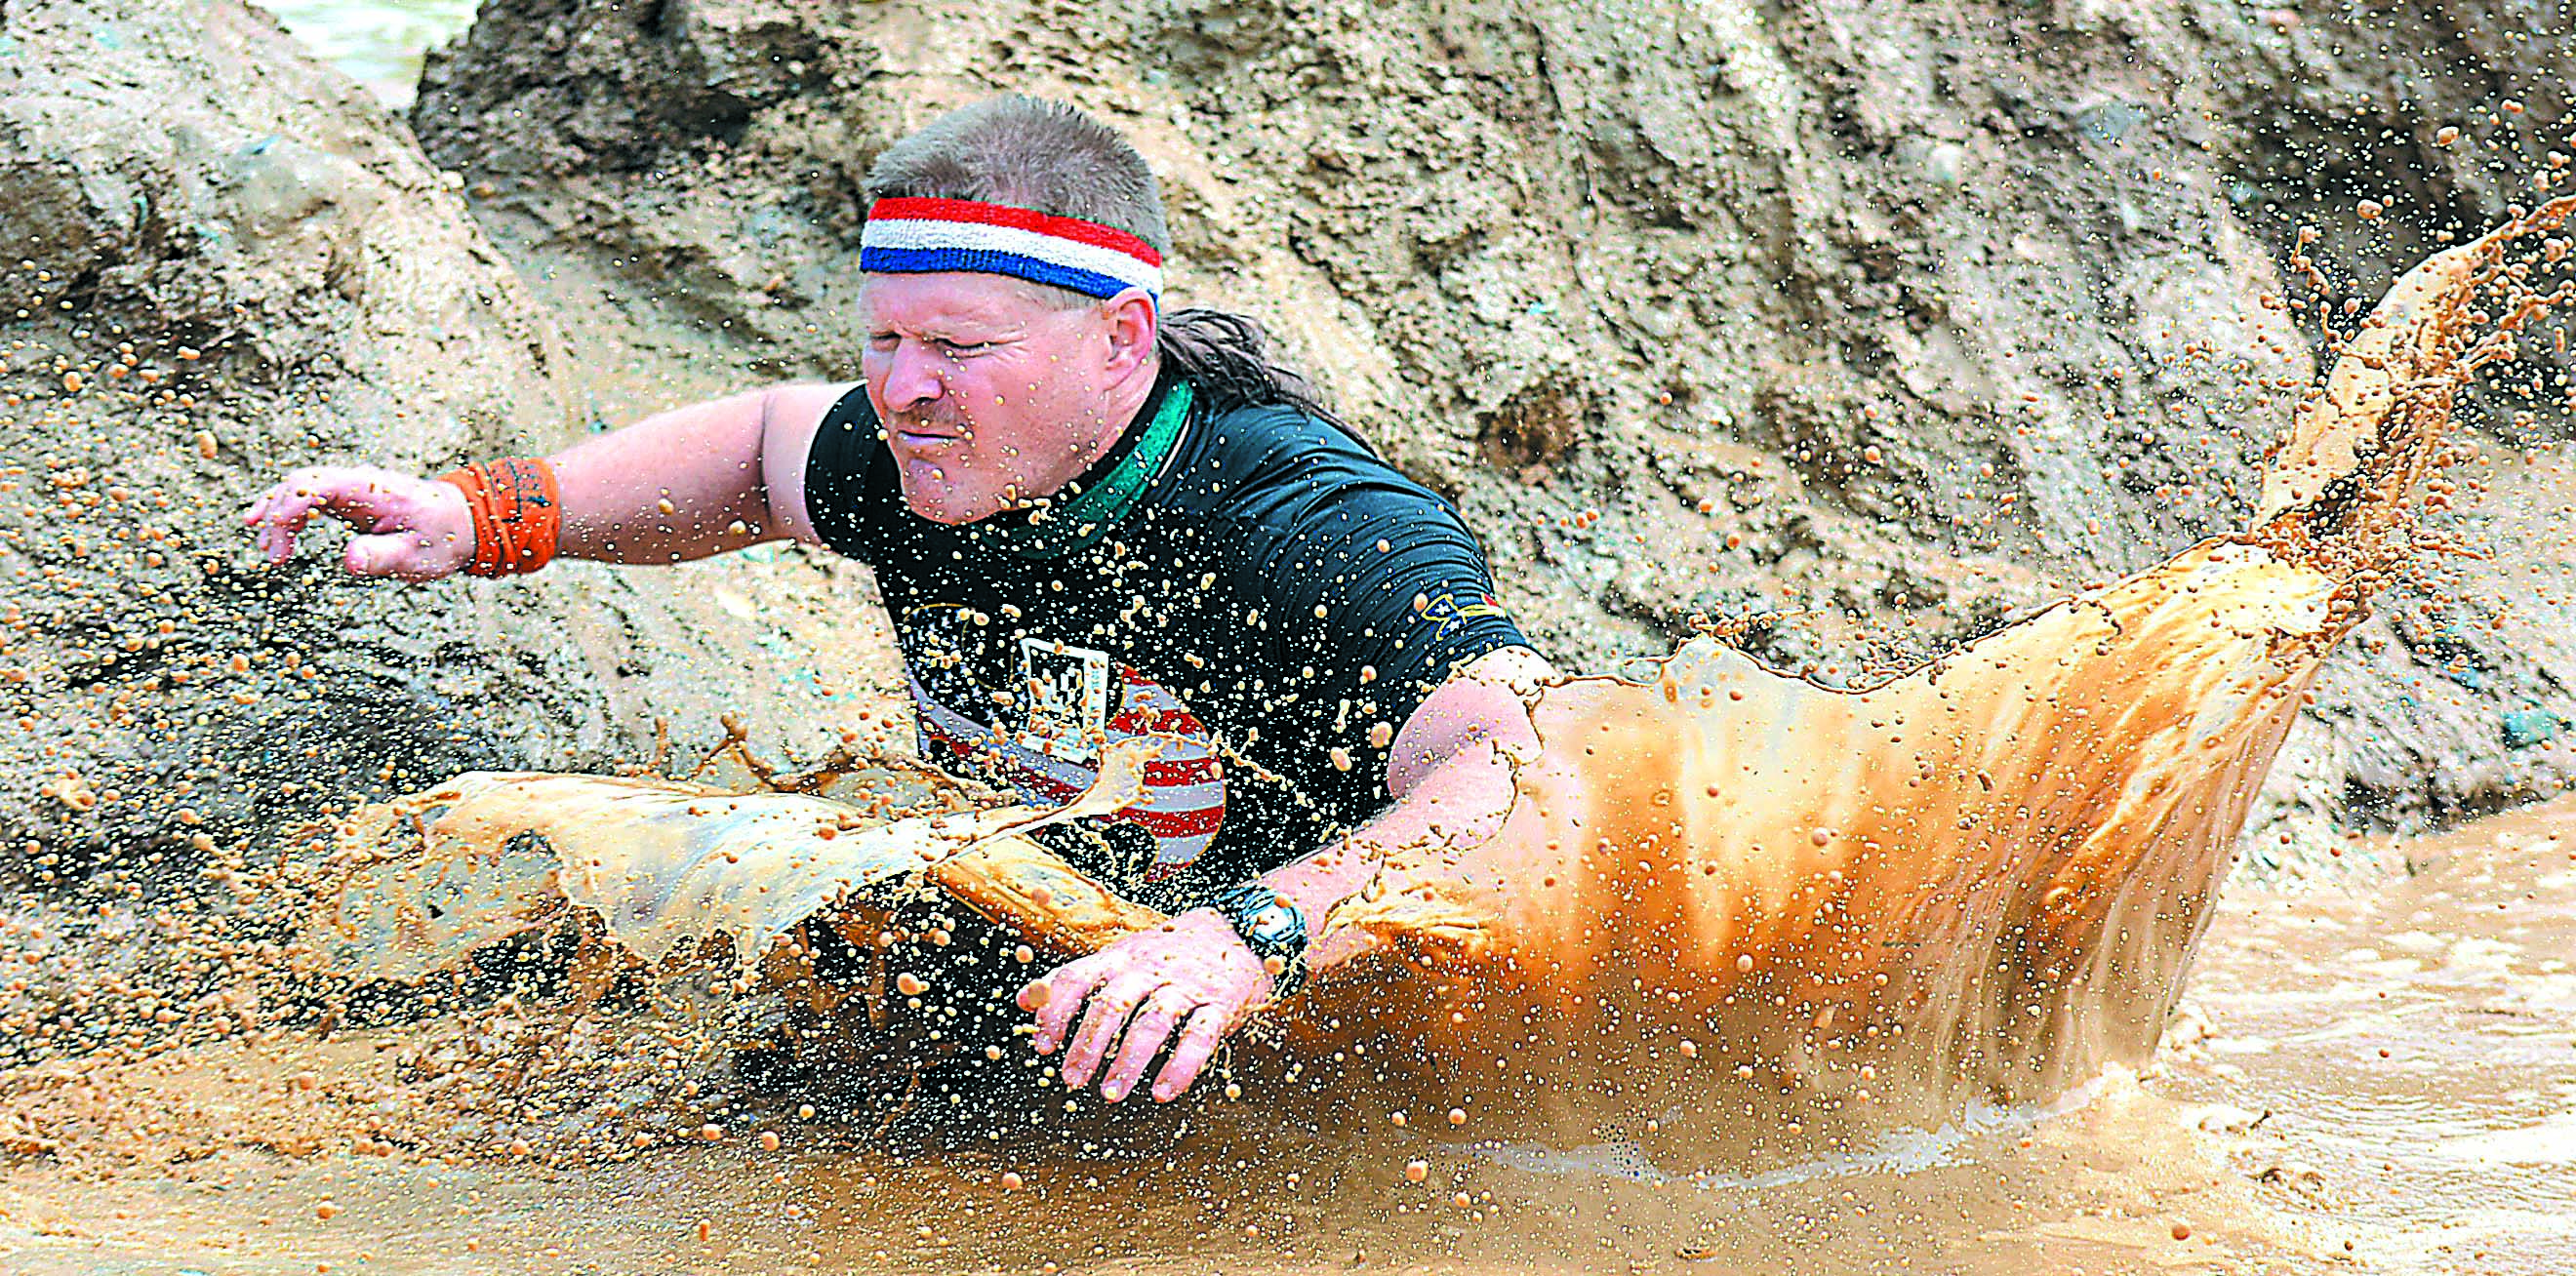 A total of 9,003 people got wet and muddy participating in the Tough Mudder event held June 2-3 on the 1,200-acre Koenig Sand & Gravel property in Oxford Township. For plenty of full-color Mudder photos, purchase a copy of the Leader for $1. Photos by C.J. Carnacchio.